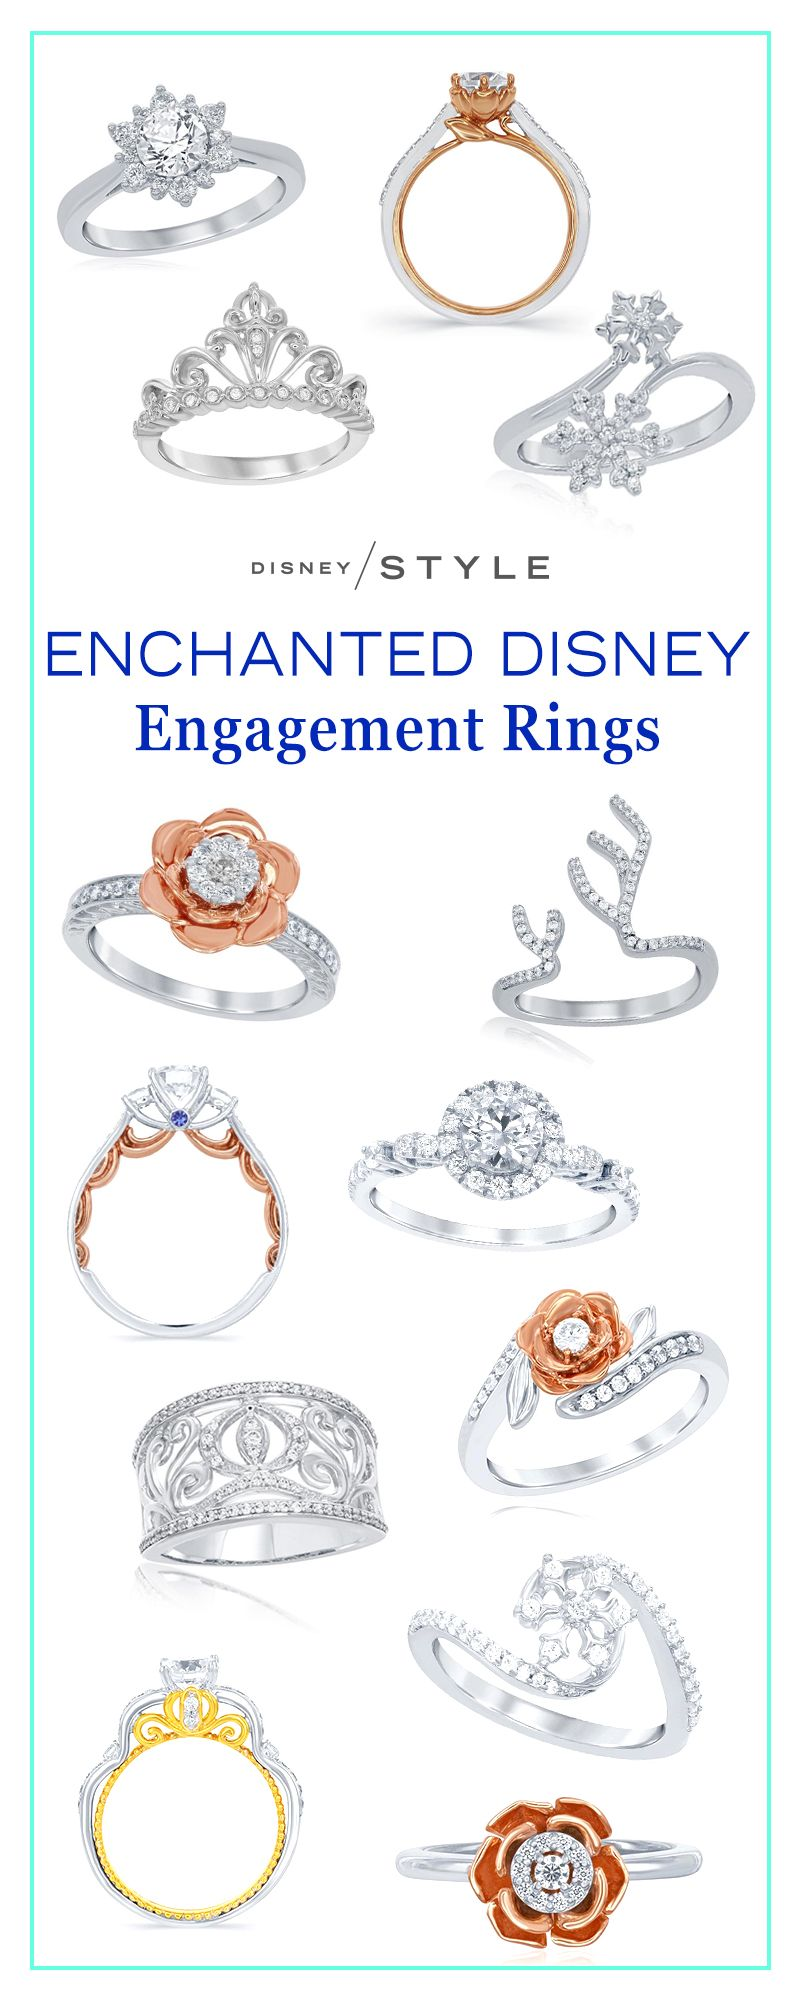 disney wedding ring The new Enchanted Disney engagement rings are truly magical Disney Weddings diamond rings with